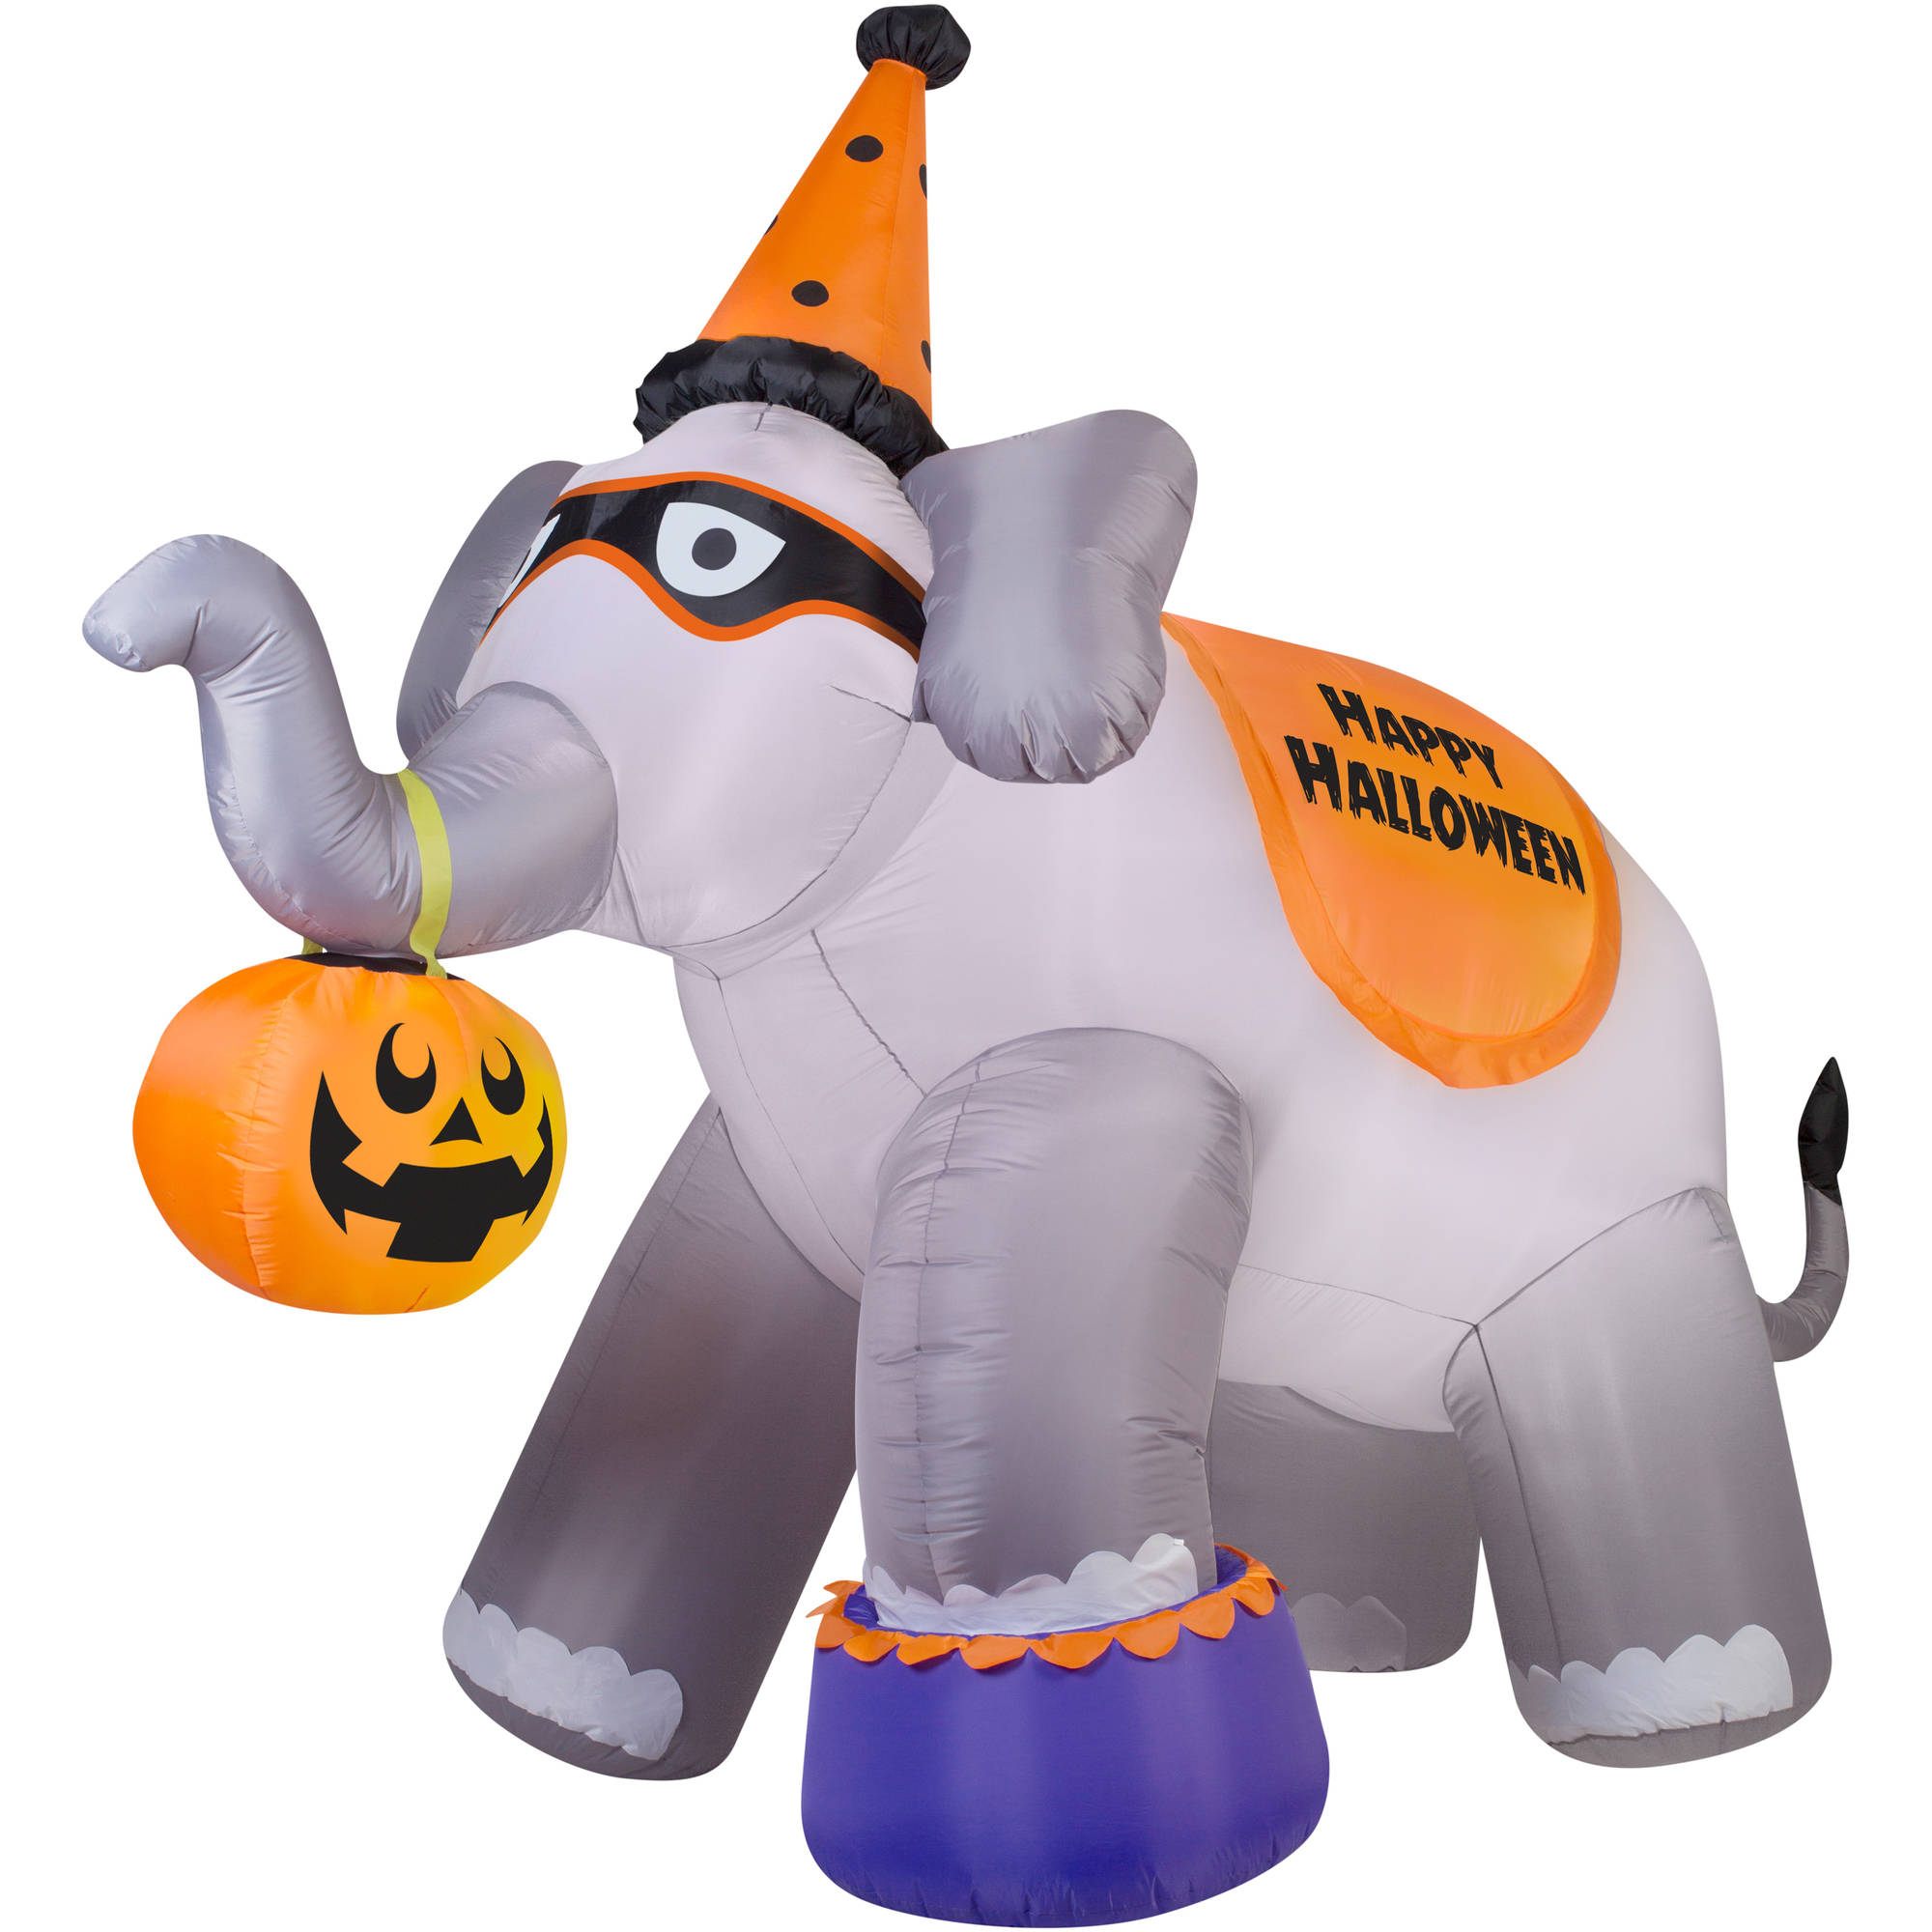 gemmy airblown inflatable 9 x 11 giant elephant halloween decoration walmartcom - Www Gemmy Com Halloween